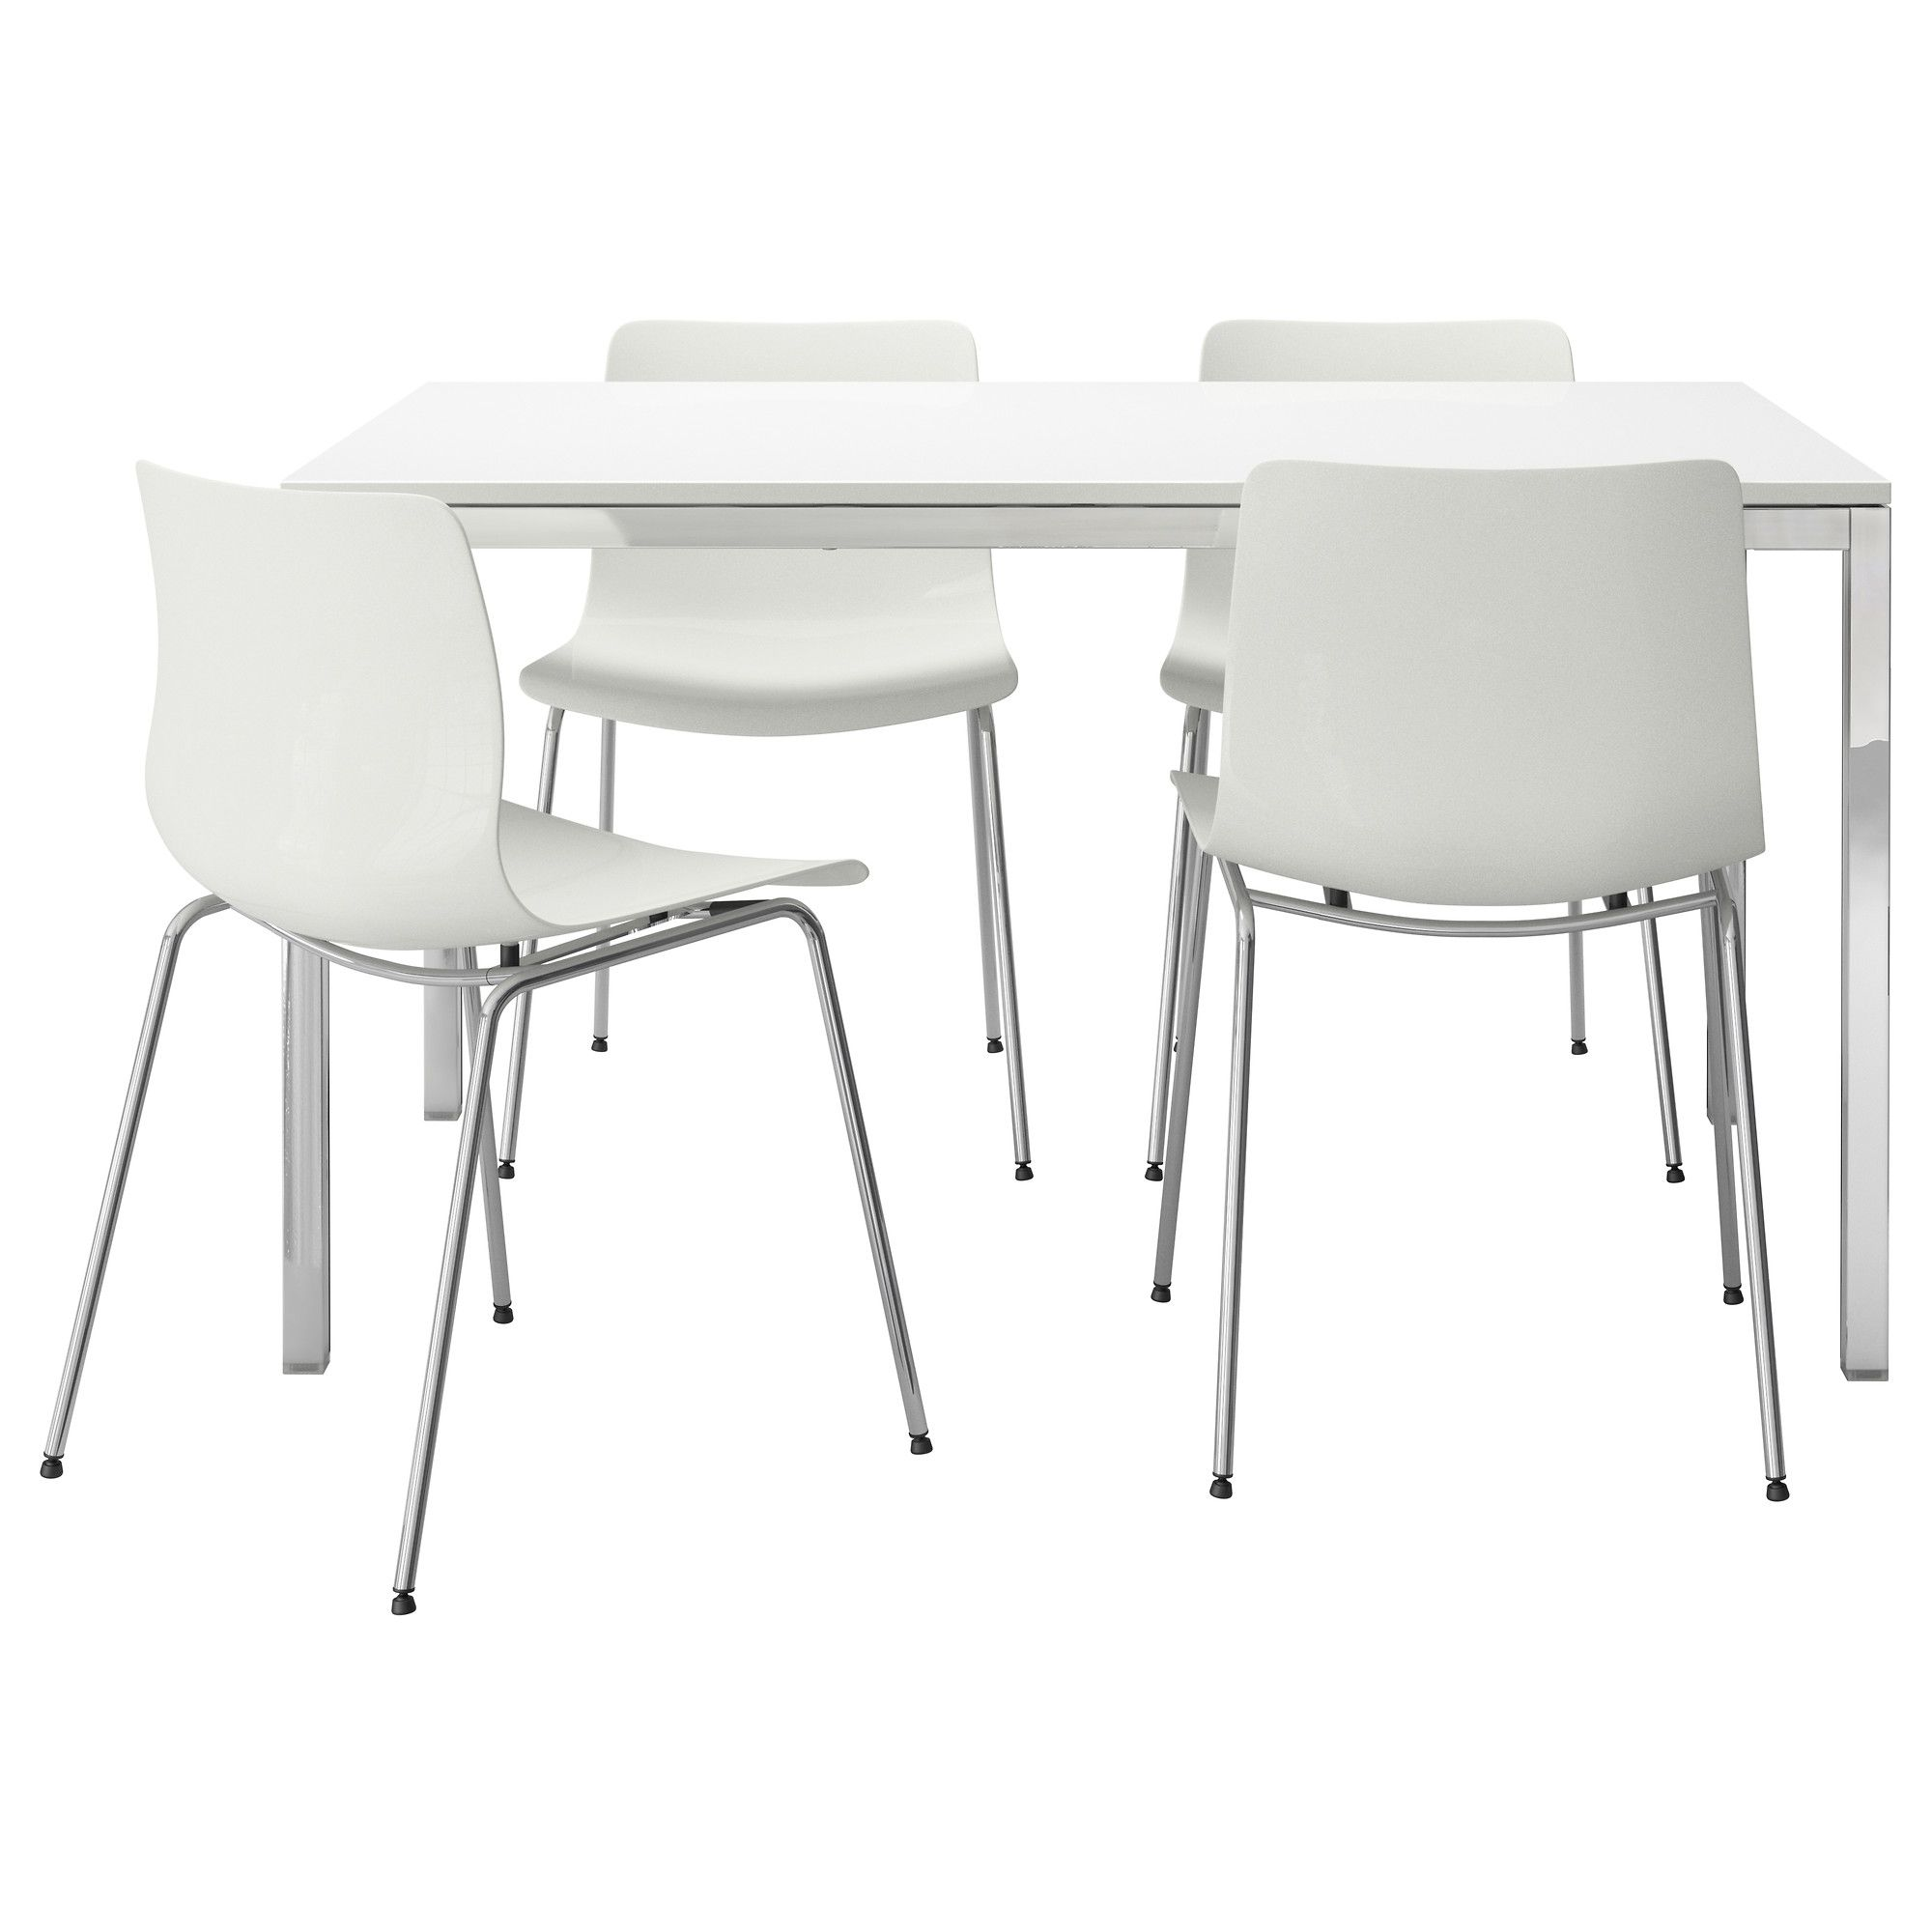 Torsby erland table and 4 chairs ikea